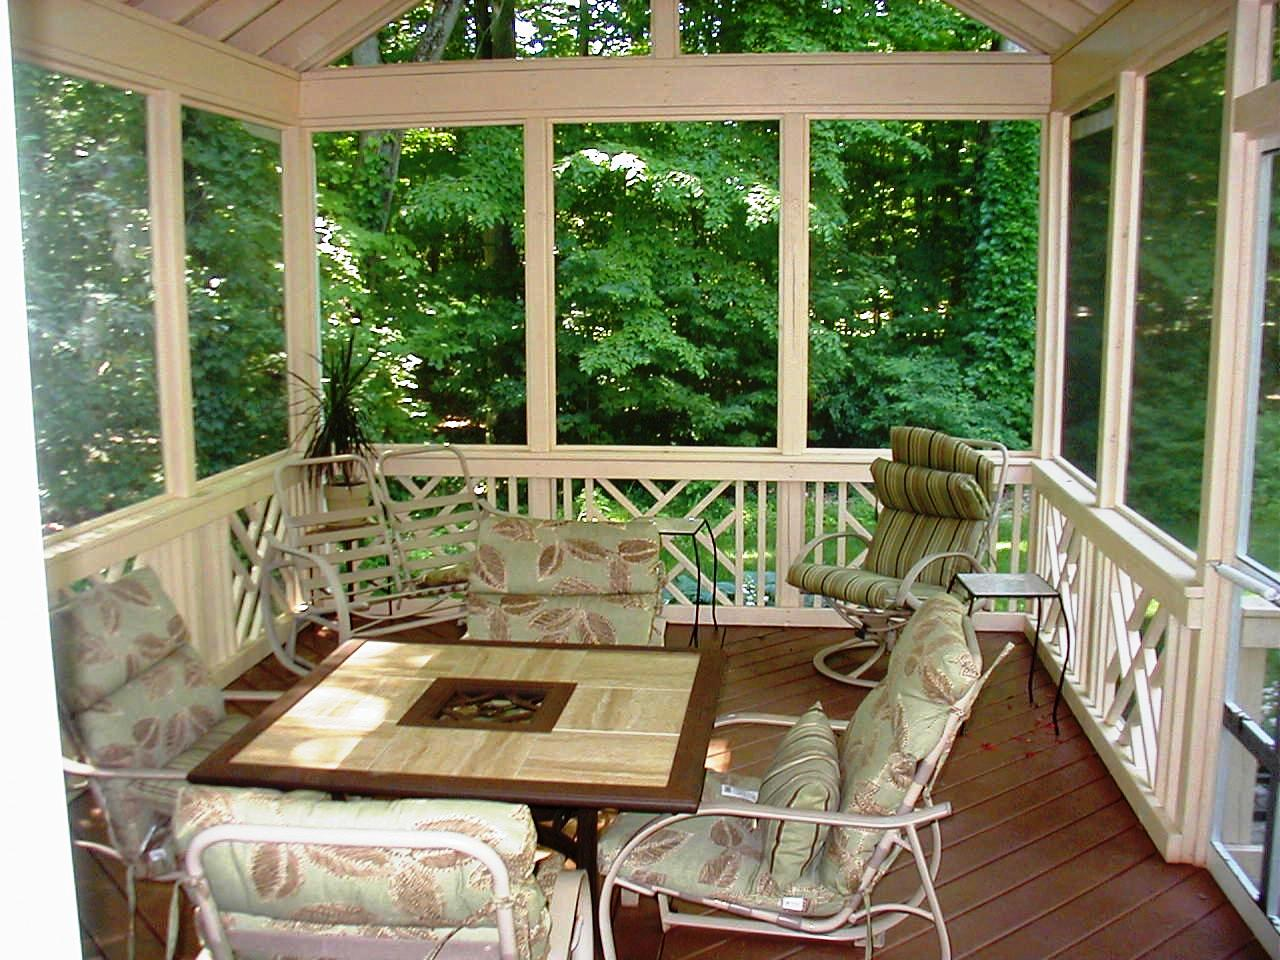 This Columbus, OH Screened Porch Shows The Use Of A Decorative Divider Rail  And Post